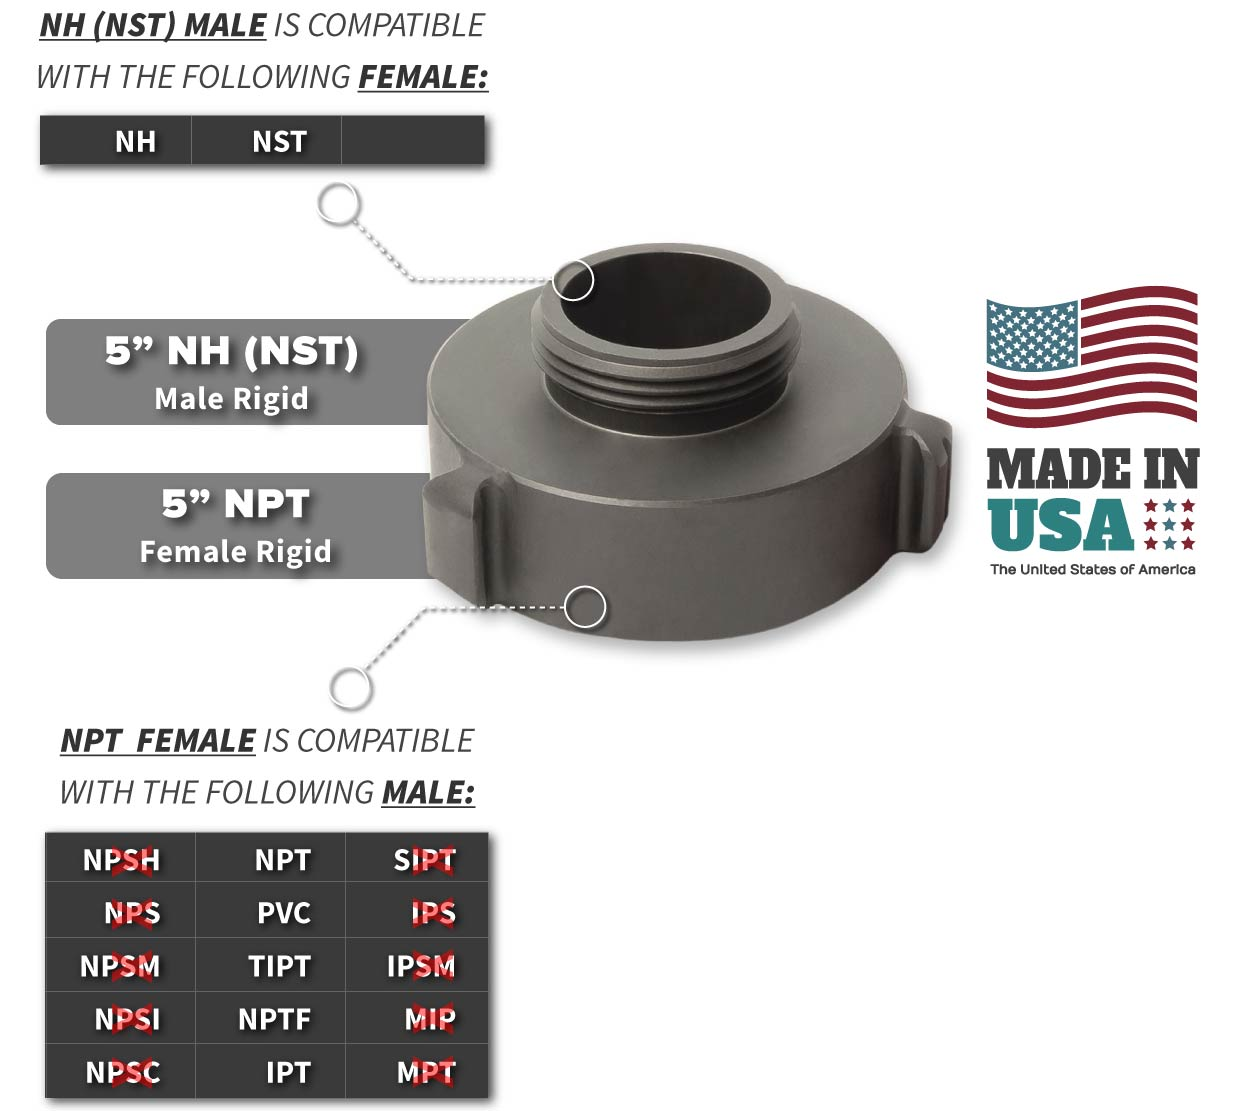 5 Inch NPT Female x 5 Inch NH-NST Male Compatibility Thread Chart